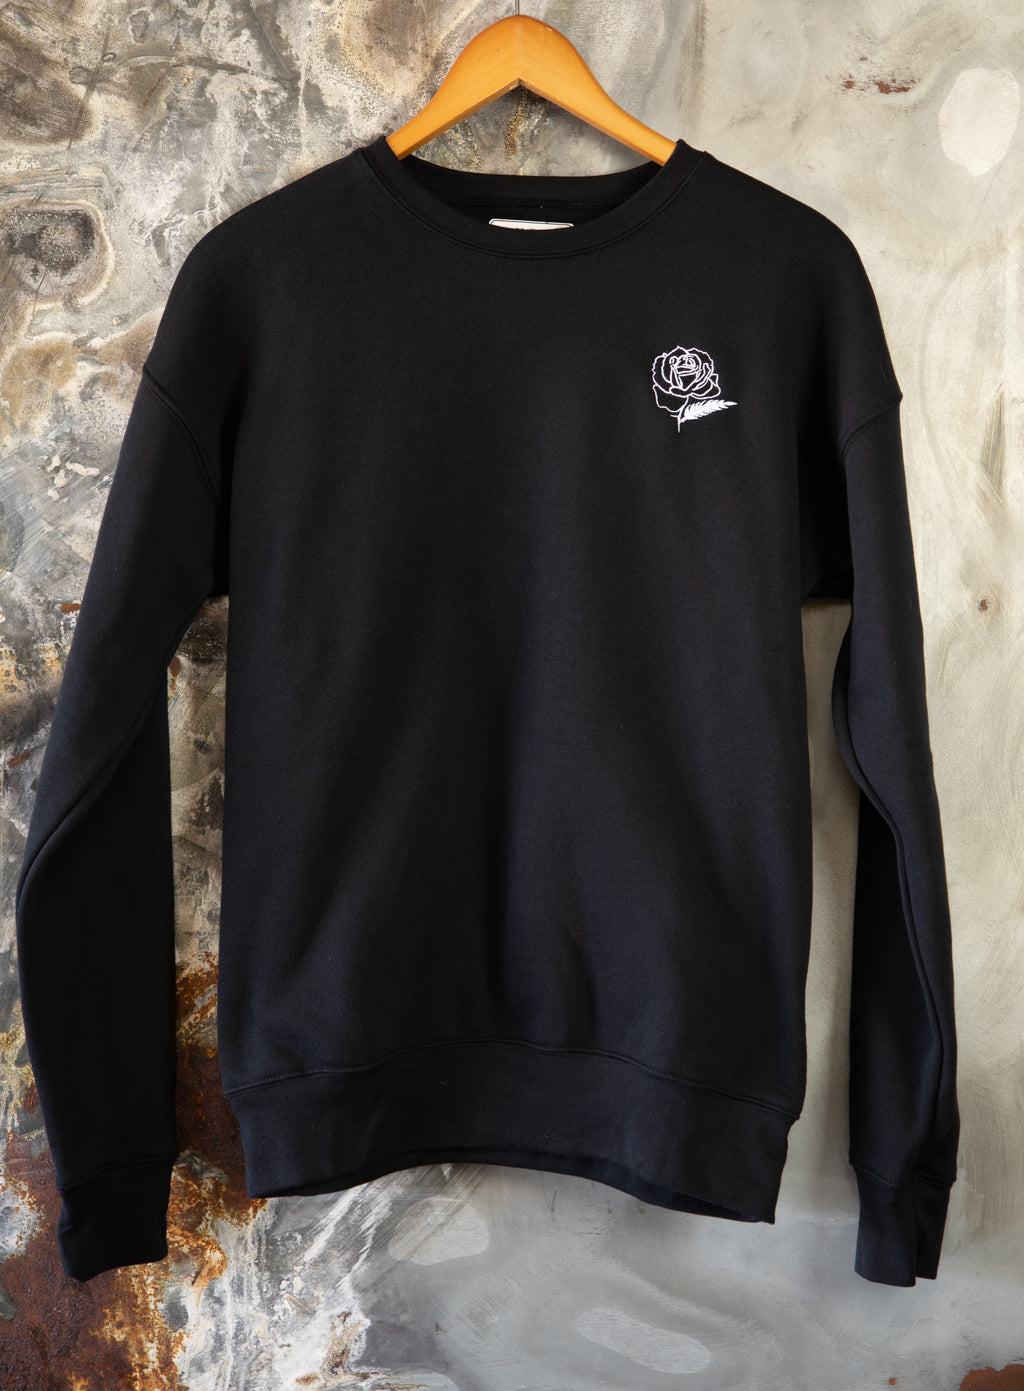 Rosefeather Crewneck - Embroidered